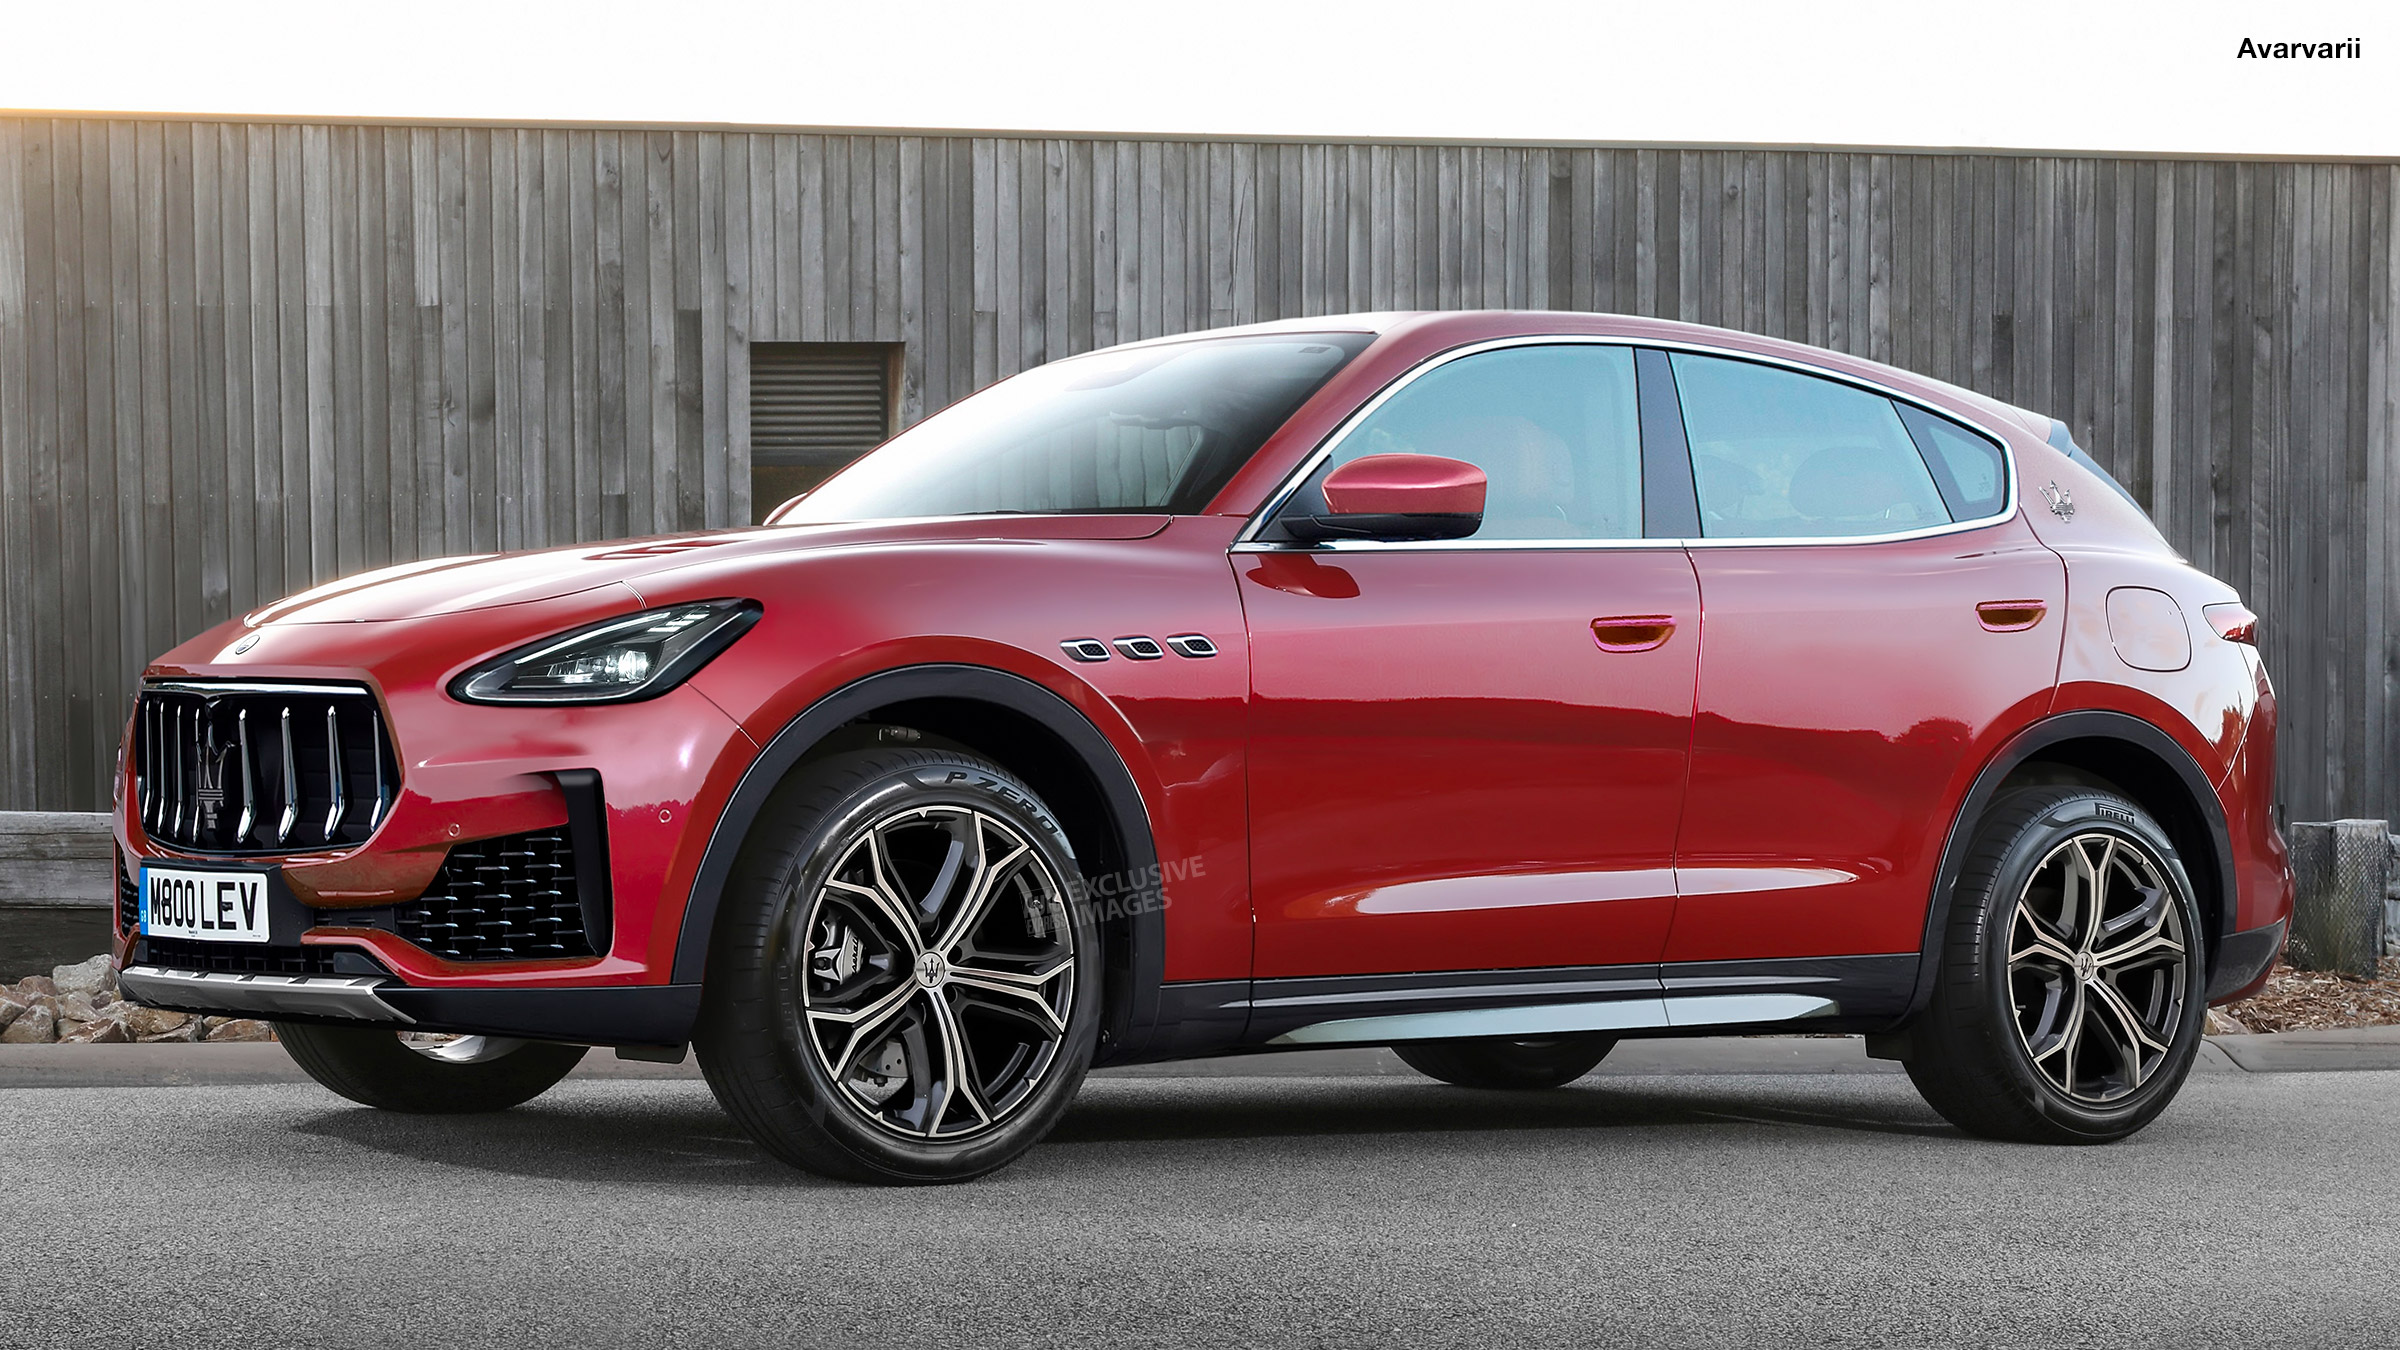 New 2022 Maserati Grecale Suv Squares Up To The Porsche Macan Auto Express